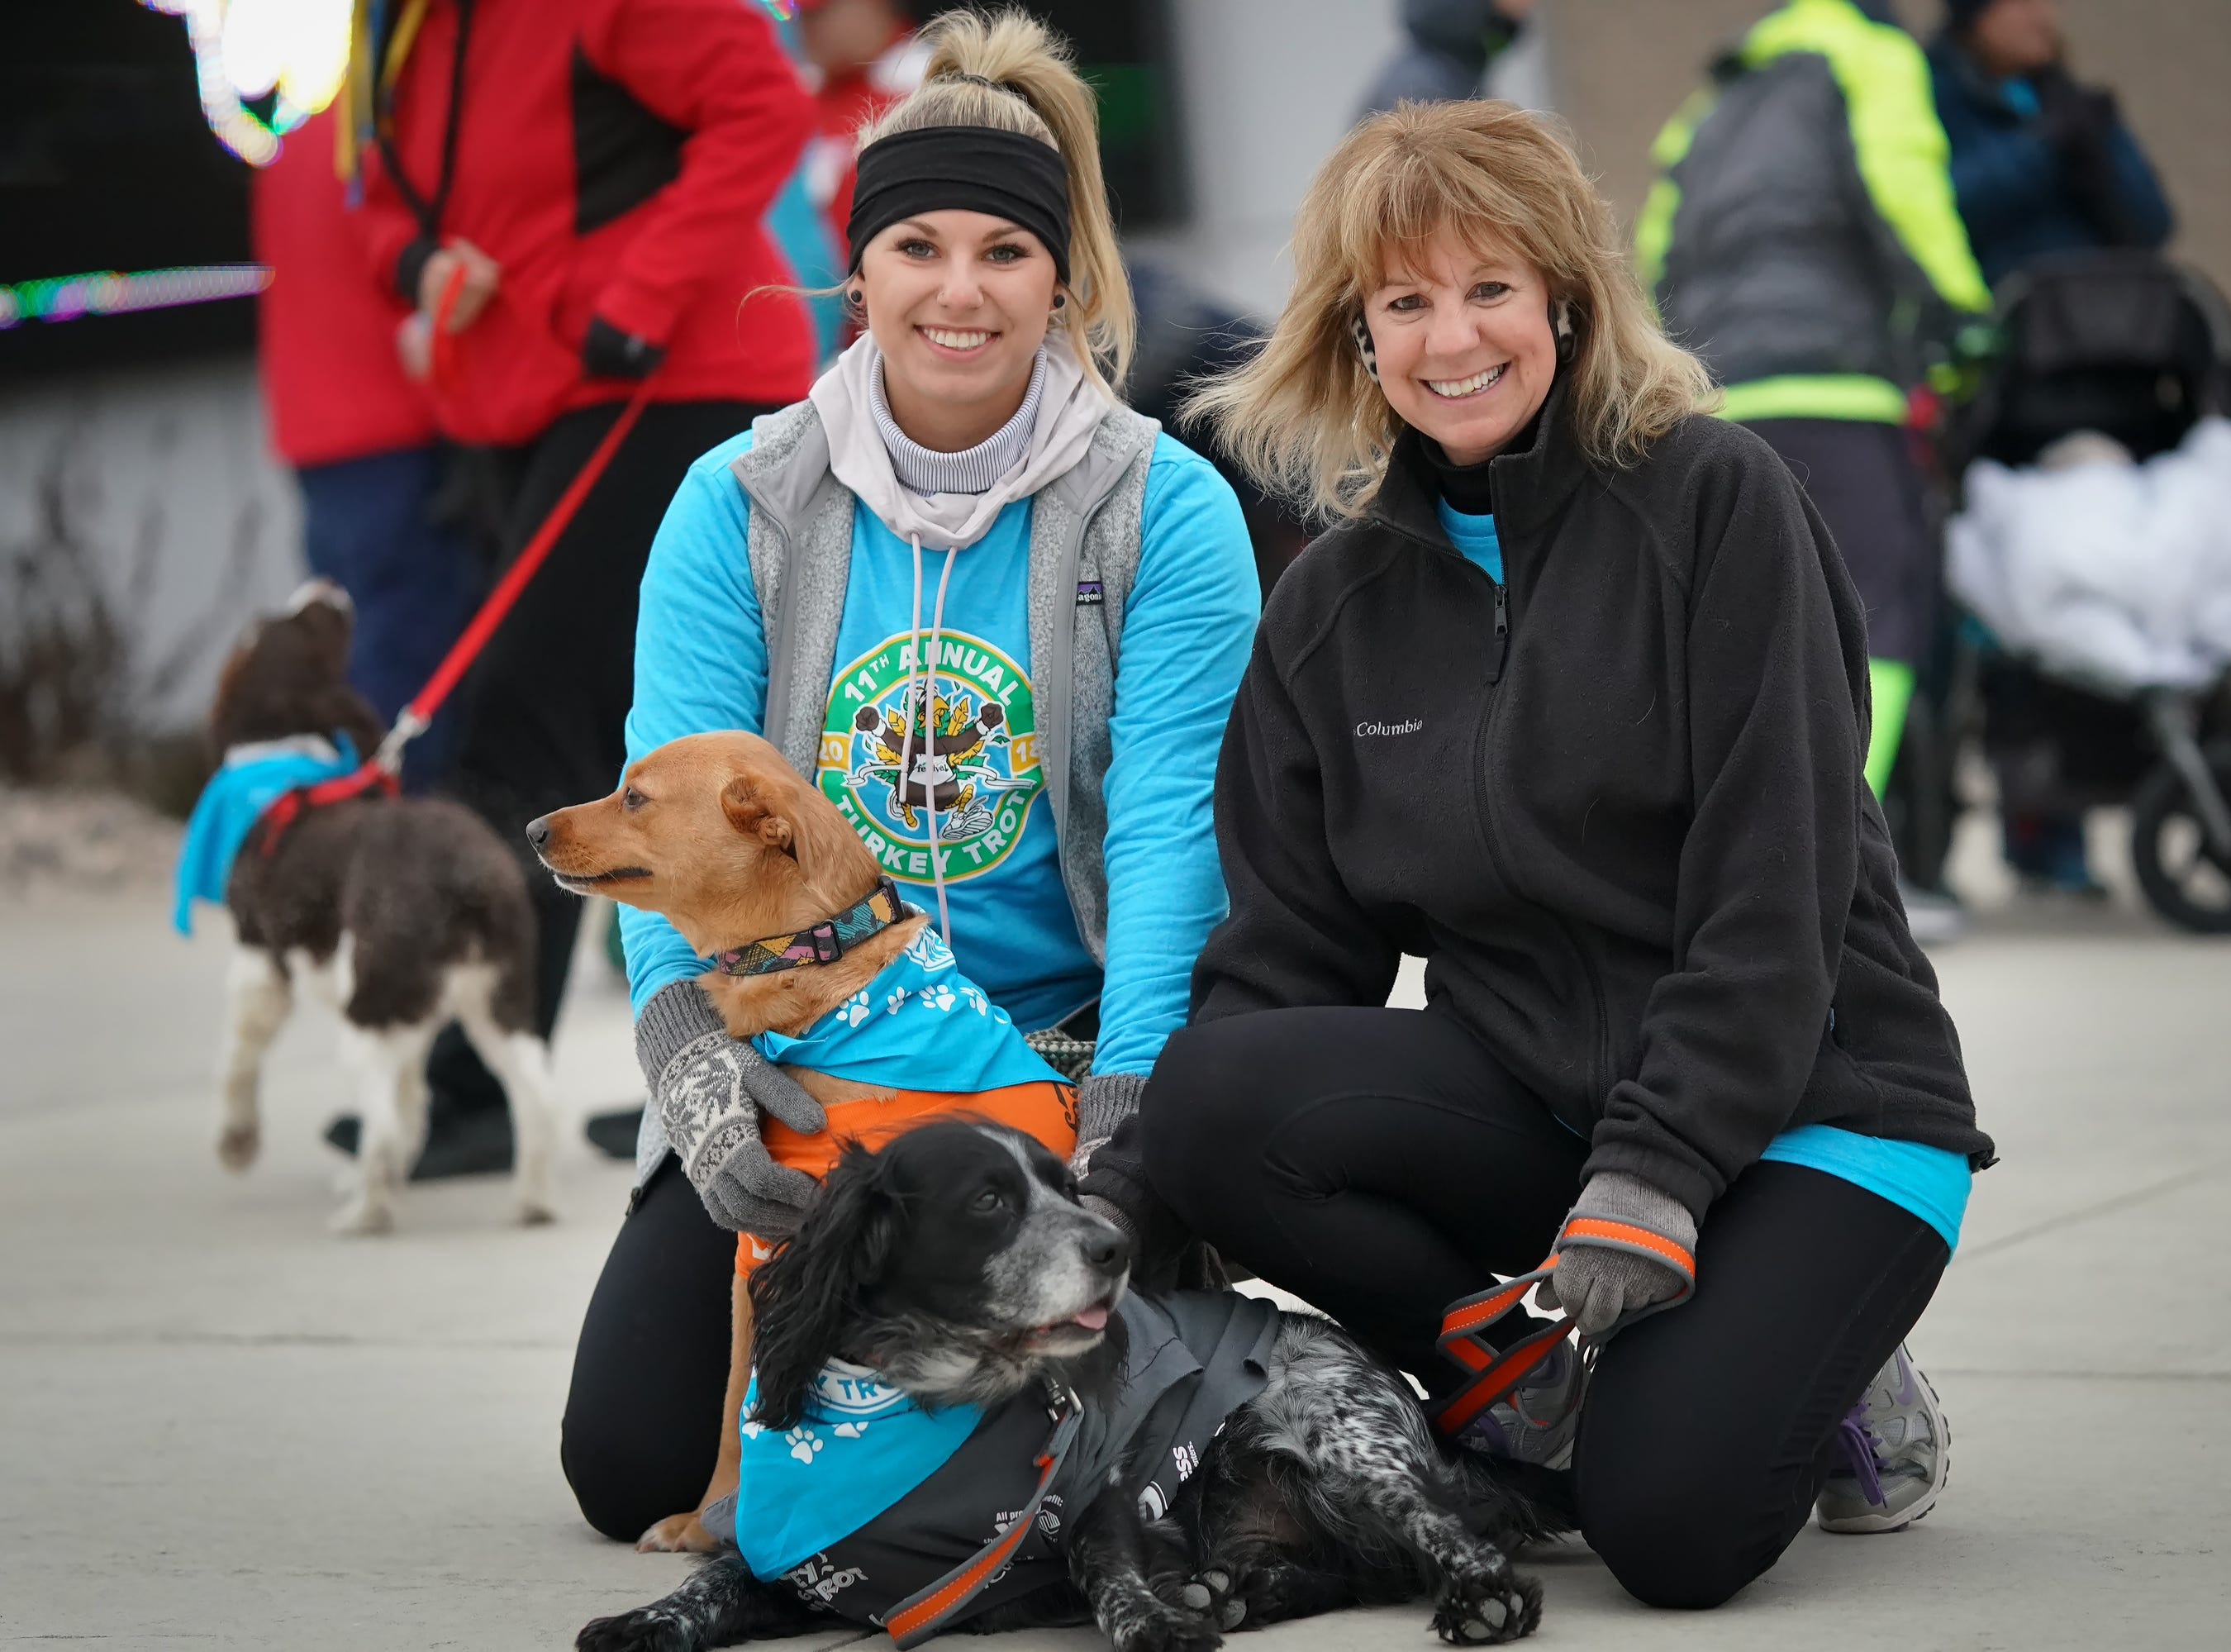 Emily and  Sue Gauger with dogs Boomer and Saide wait for the start of the race. The 11th Annual Festival Foods Turkey Trot was held Thursday morning, November 22, 2018 at the Menominee Nation Arena in Oshkosh.